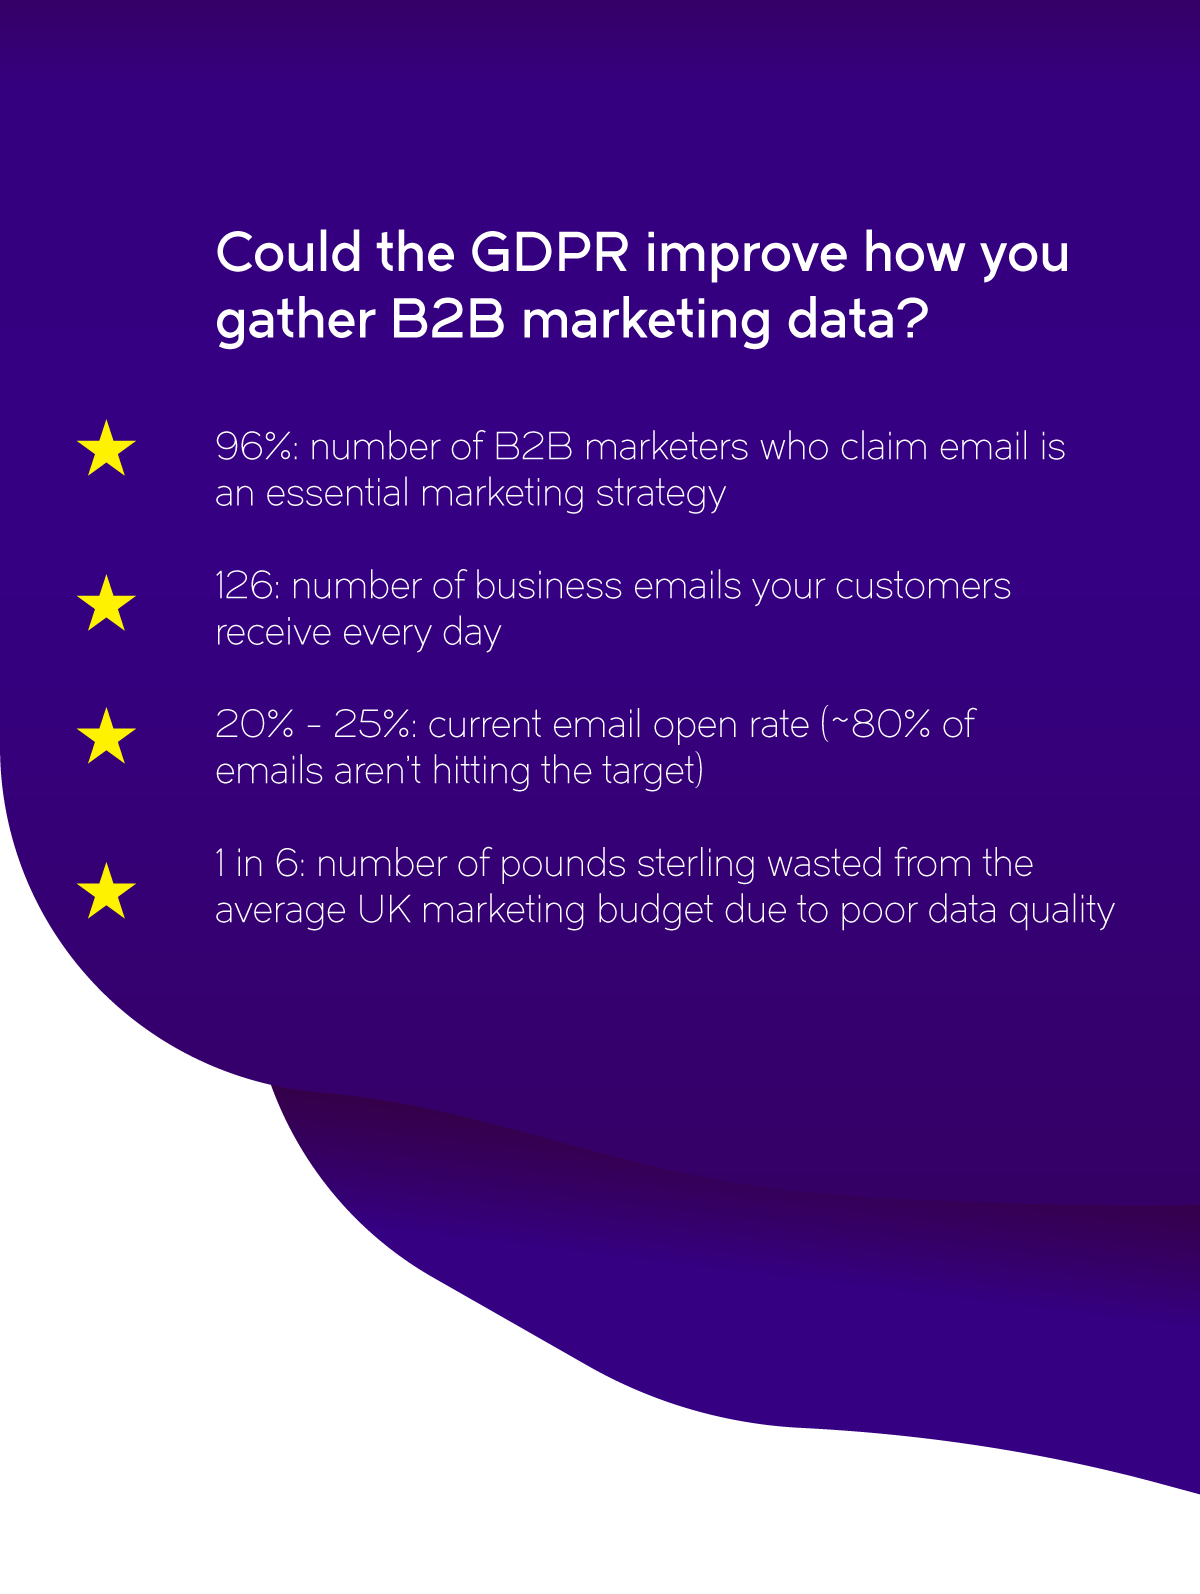 could gdpr improve how you gather b2b marketing data-1